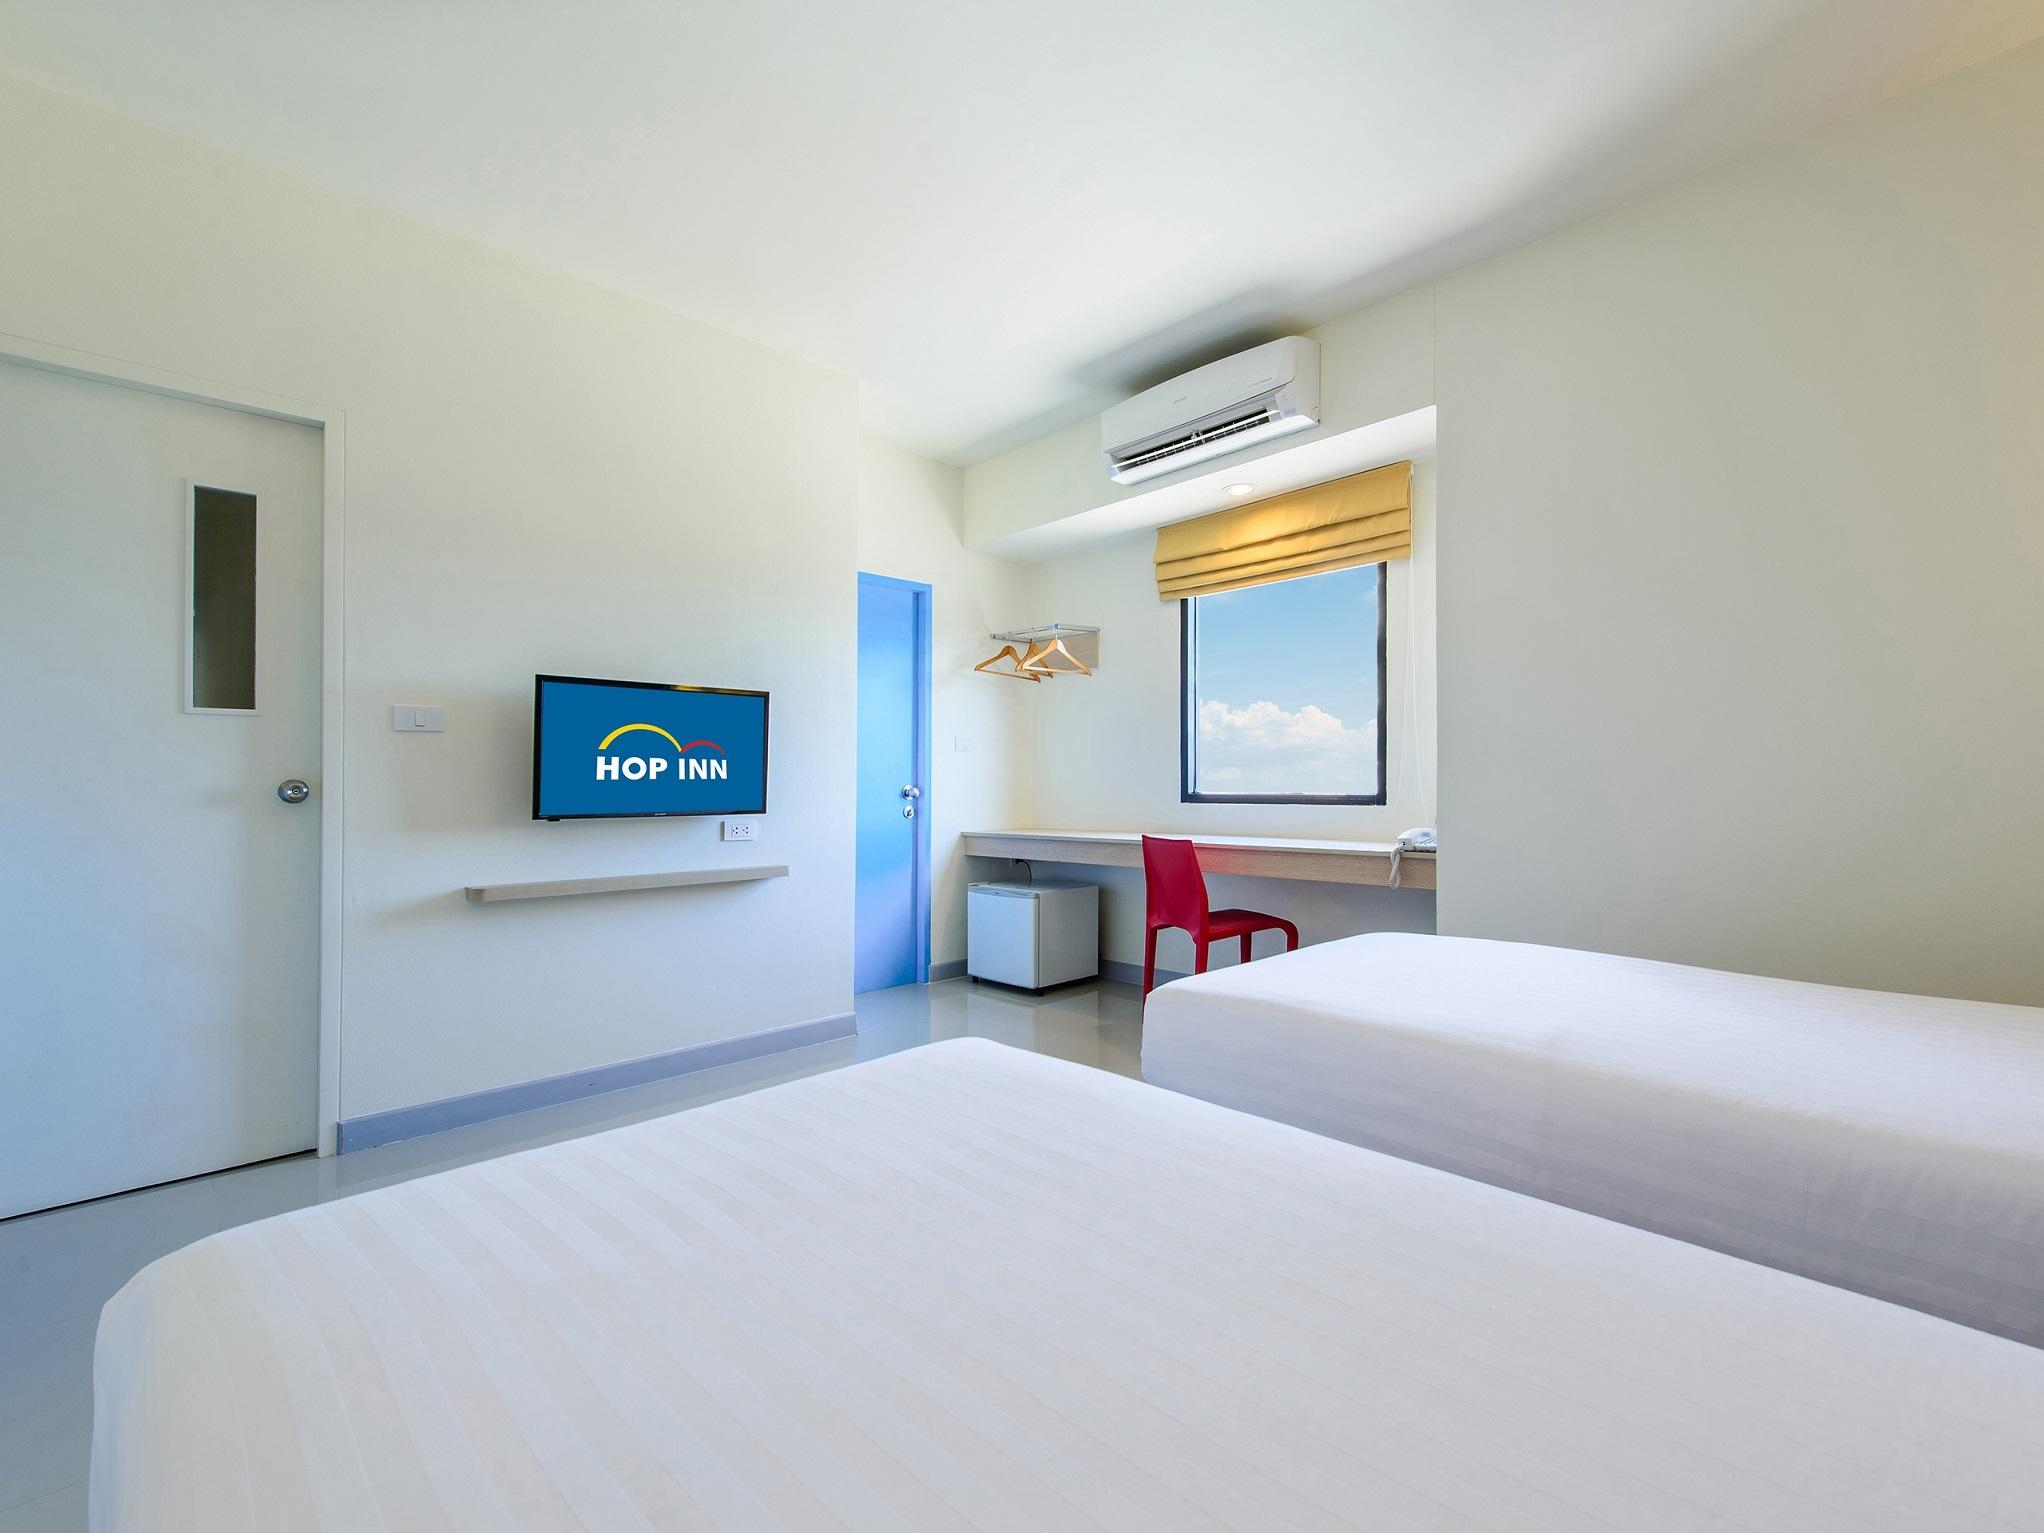 4. TwinRoom at Hop Inn Hotel